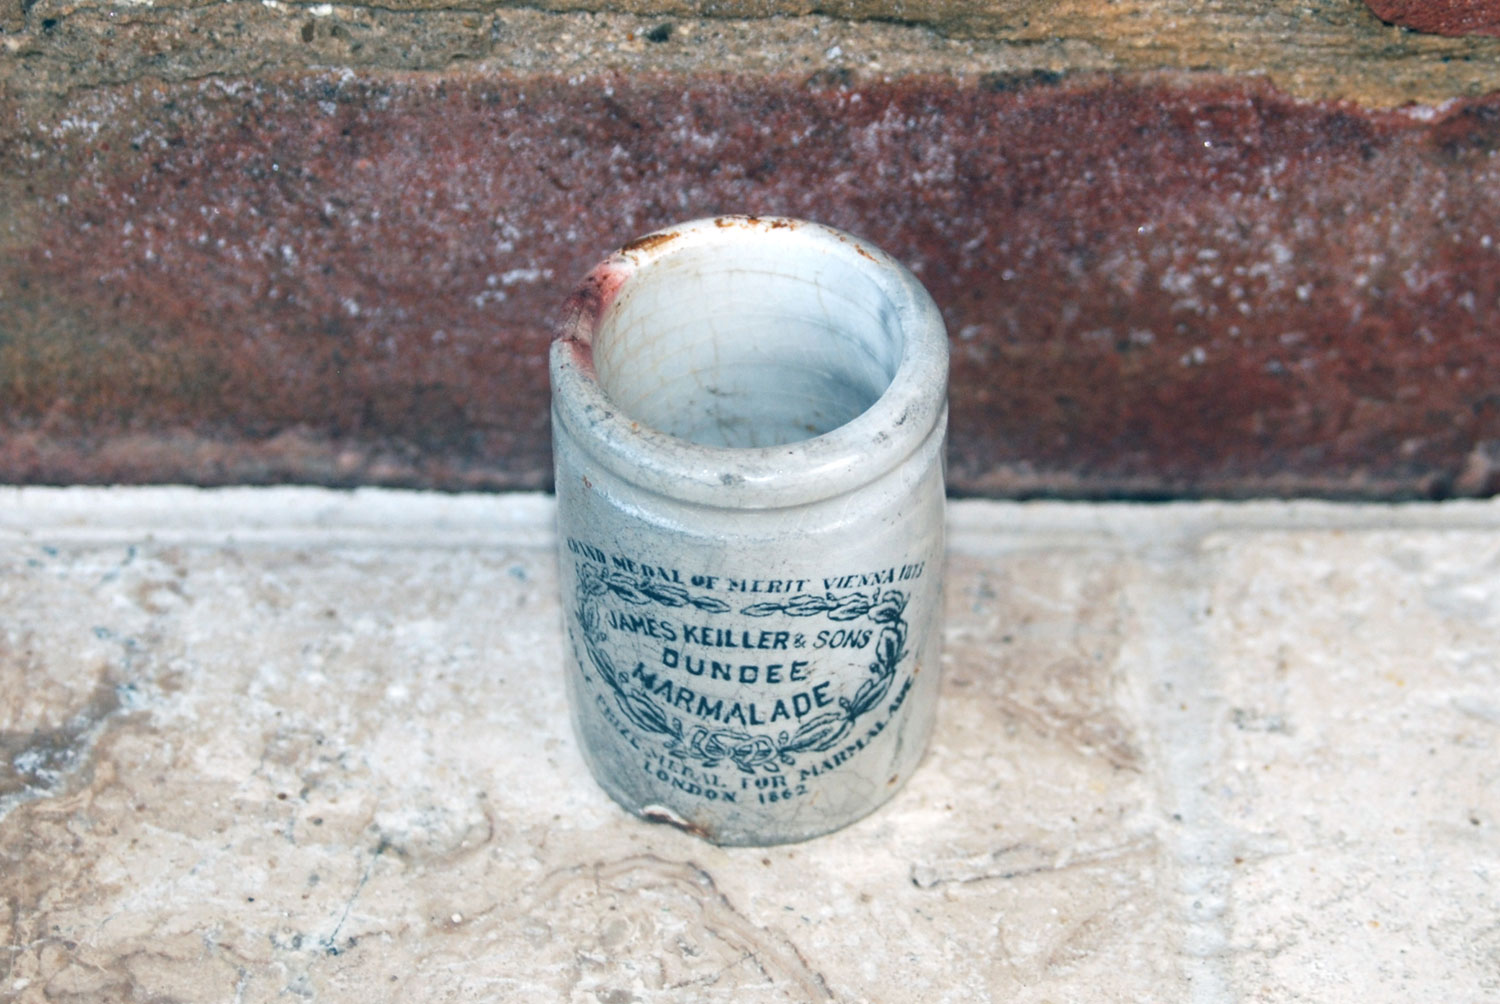 antique victorian scarce rare james keiller miniature james keiller dundee english advertising marmalade pot